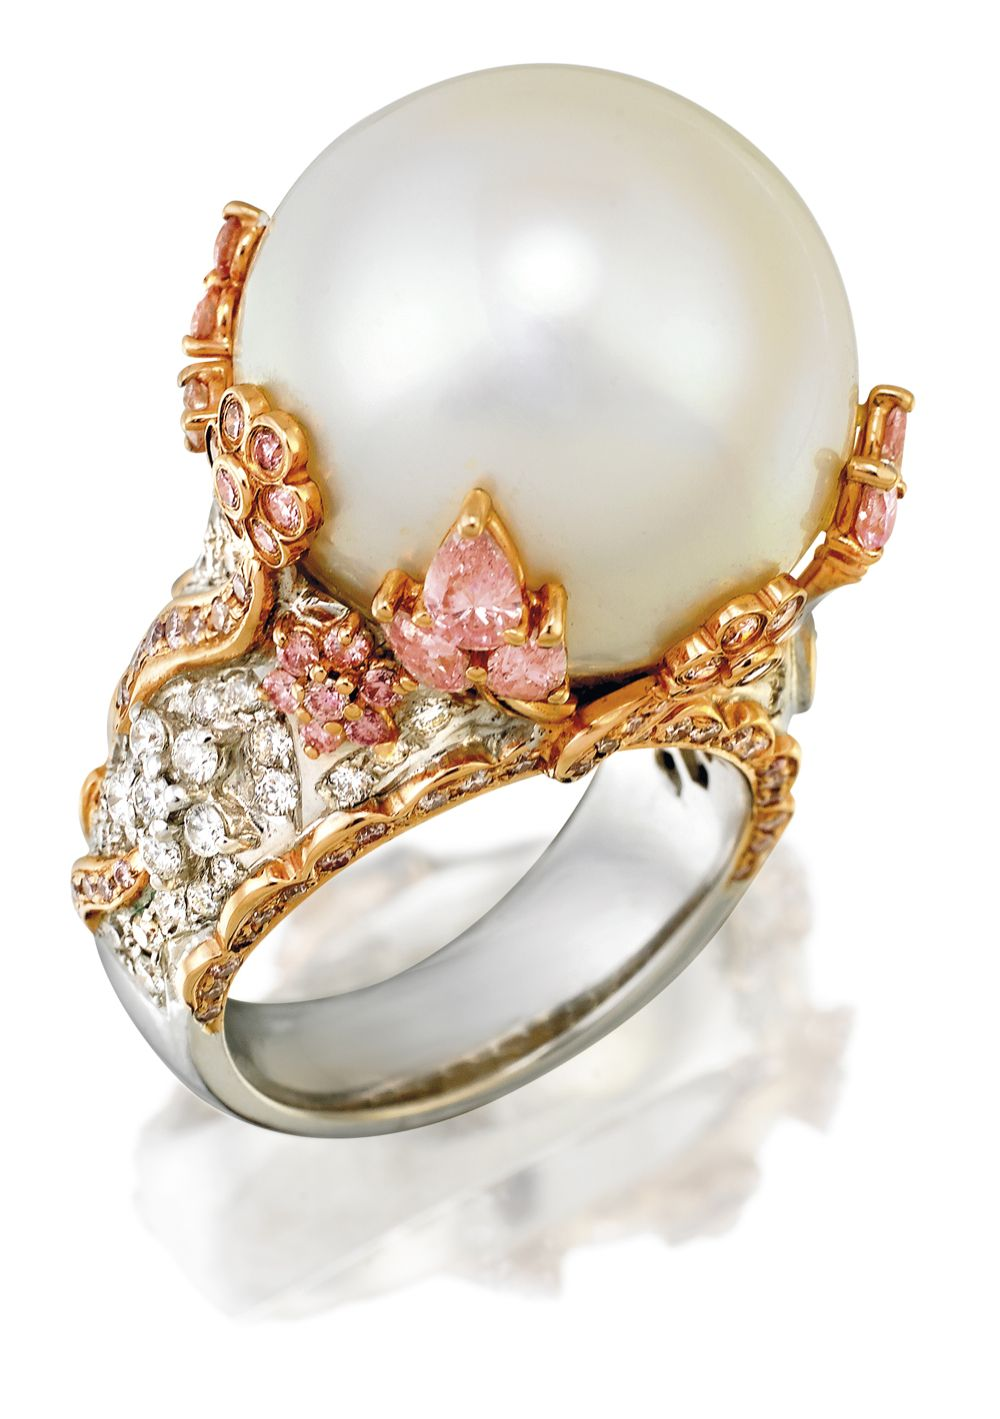 Mikimoto Pearl Engagement Ring